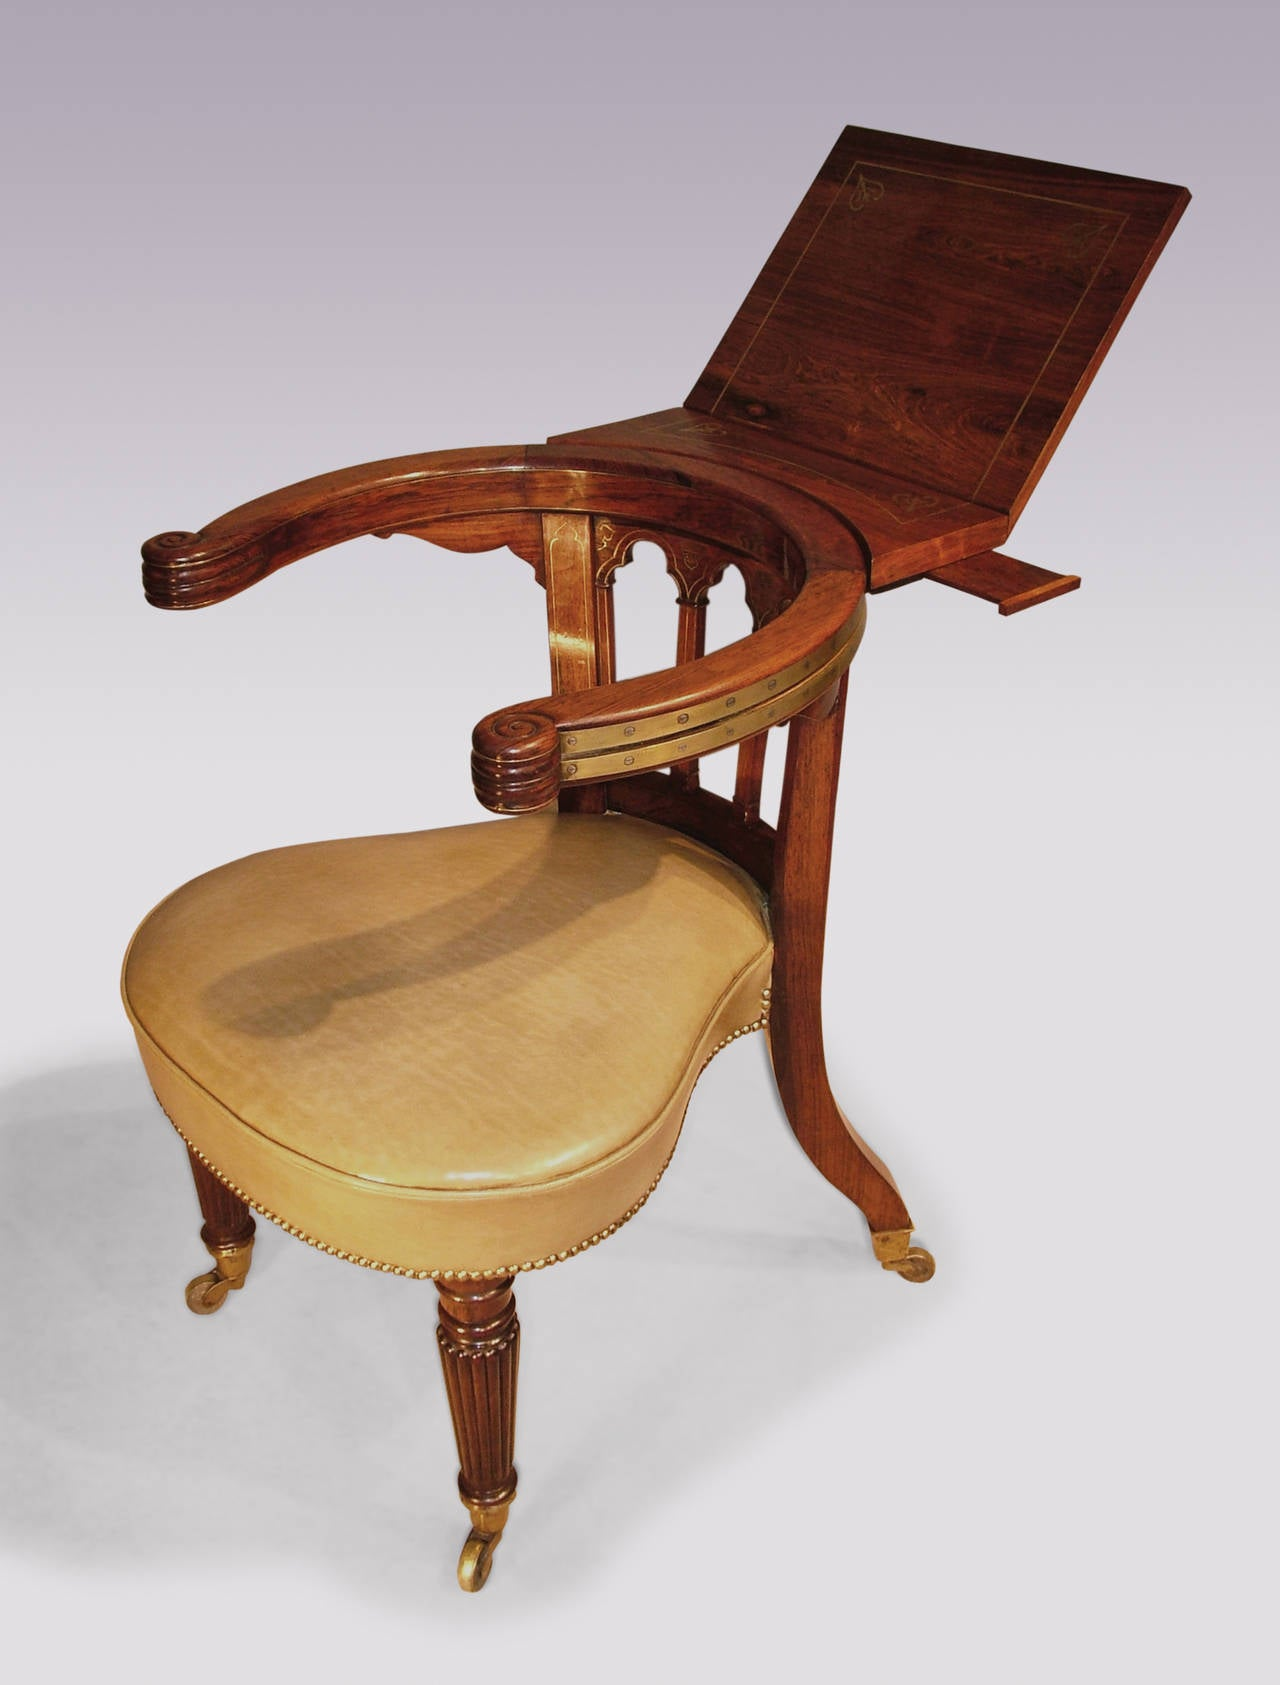 century regency period gillows rosewood reading chair at 1stdibs